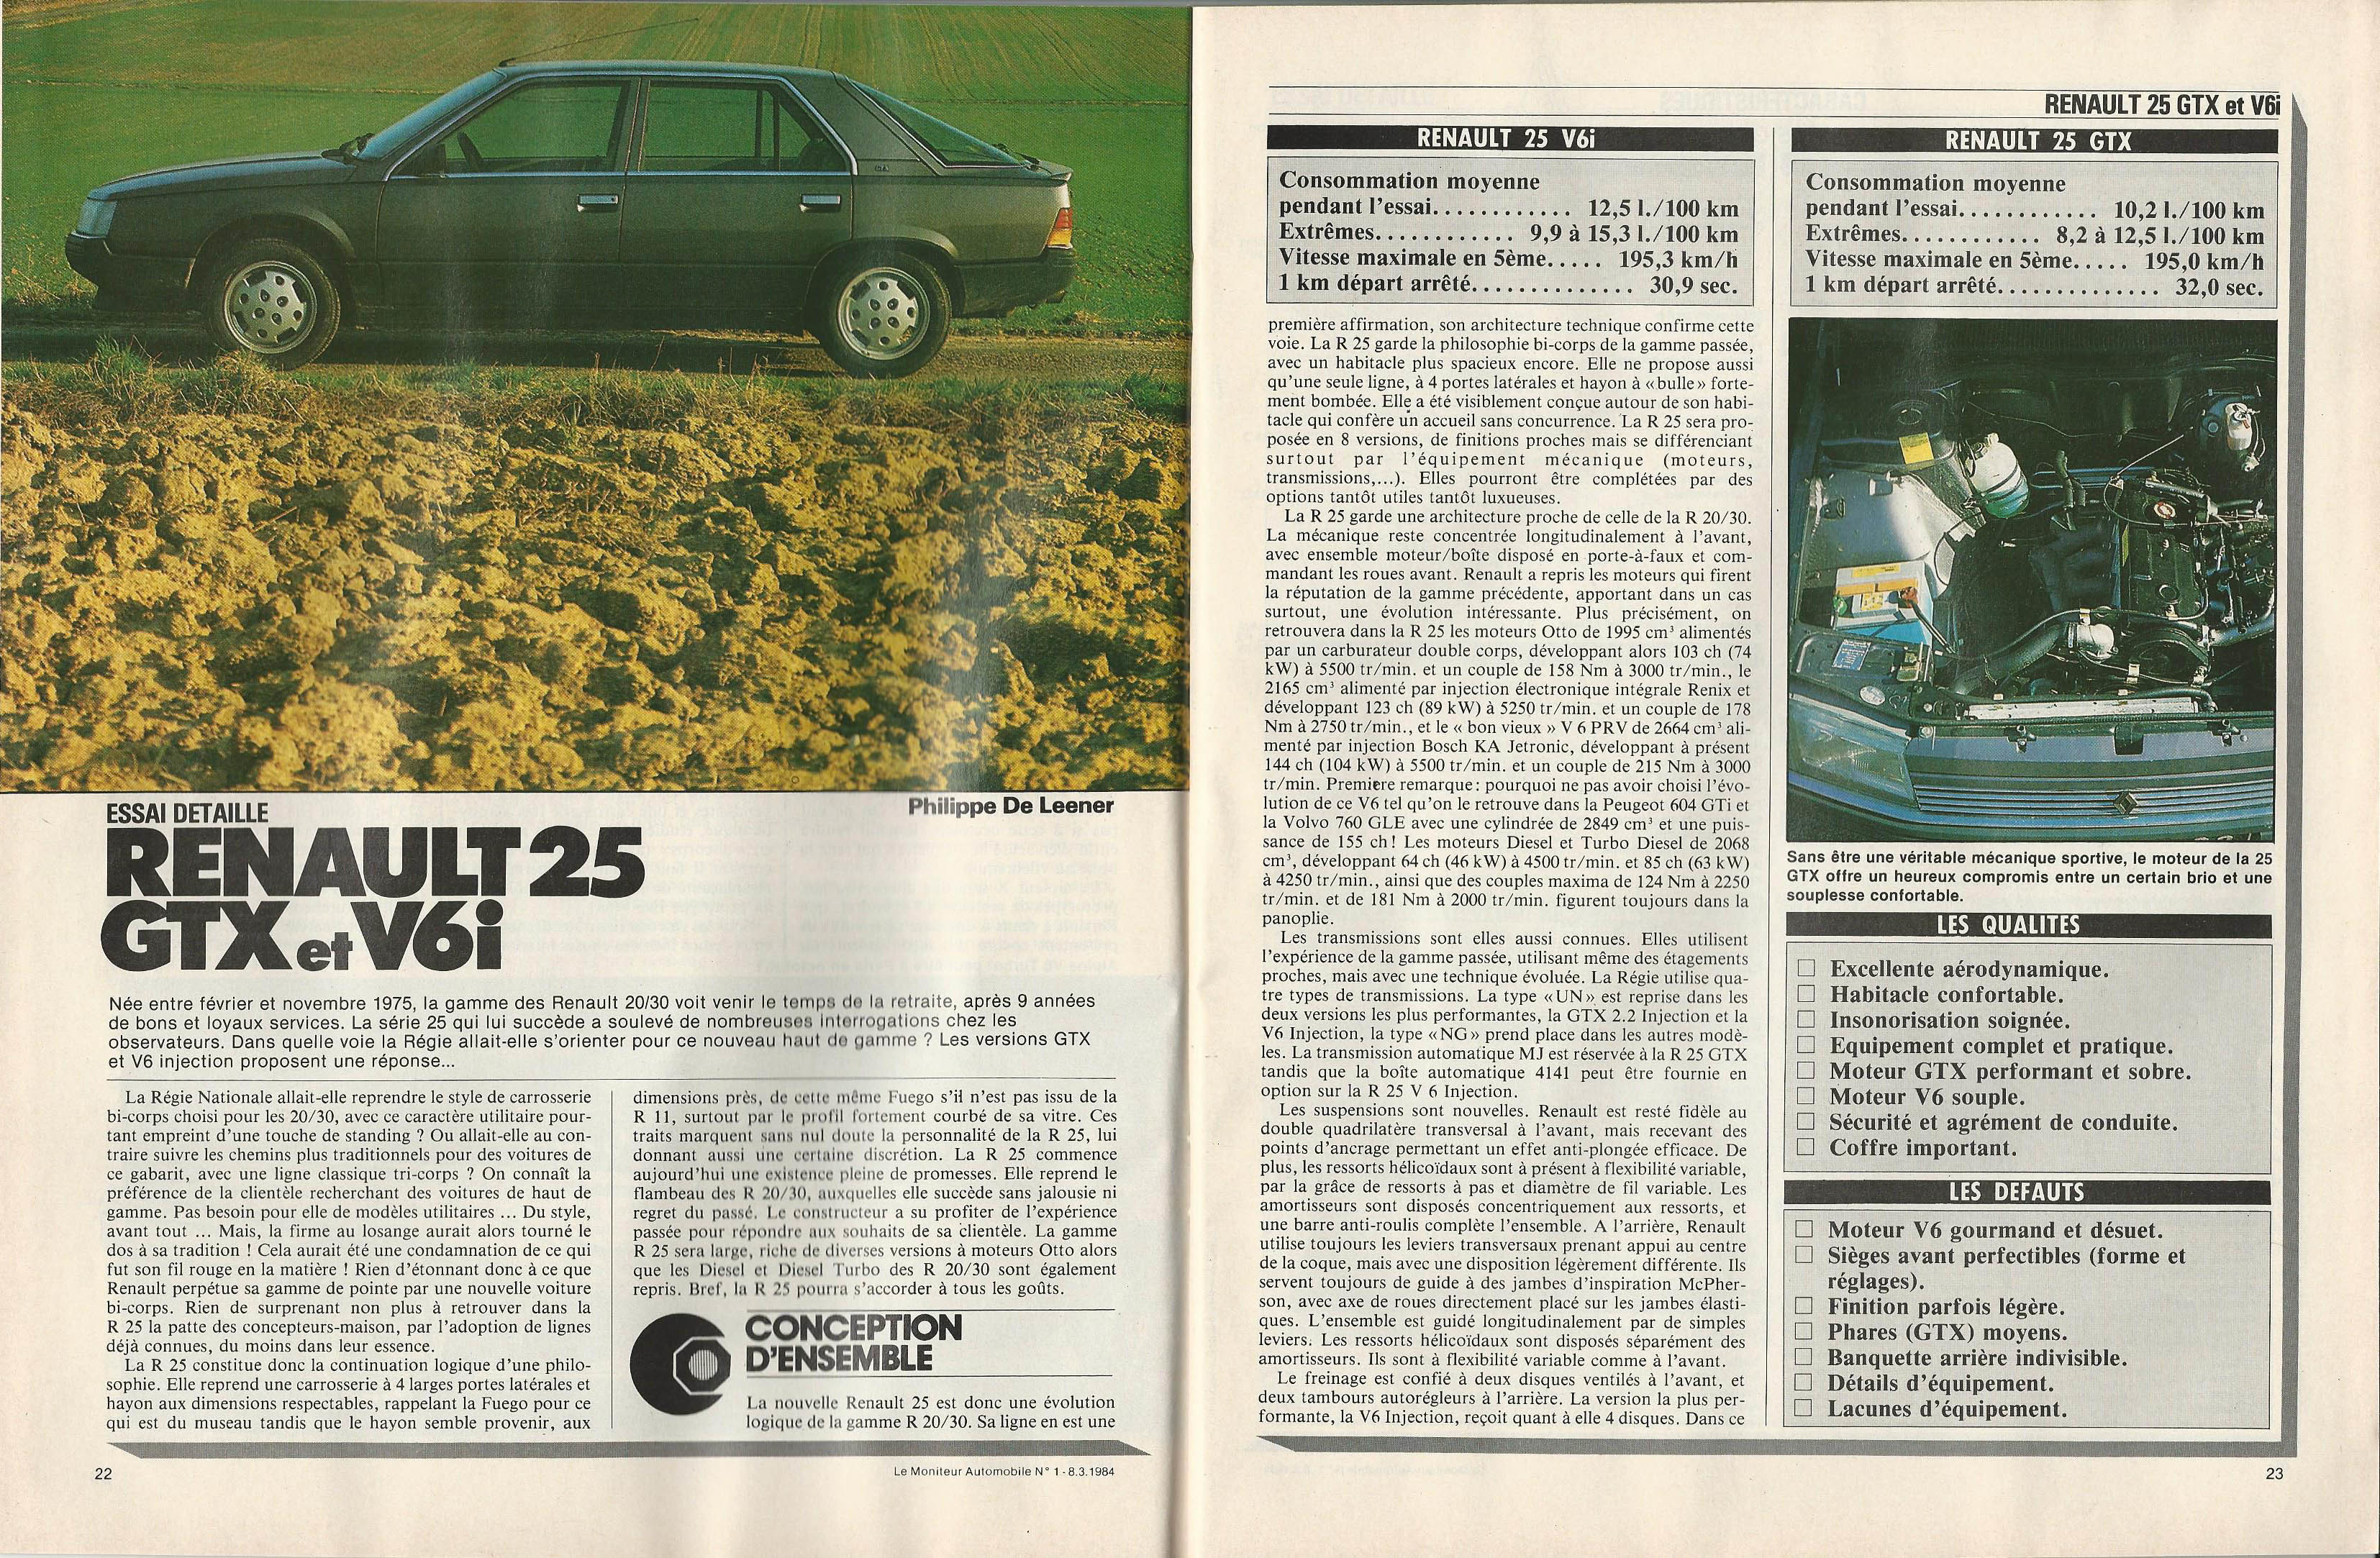 Moniteur Automobile 01 - 08 Mars 1984 (12)